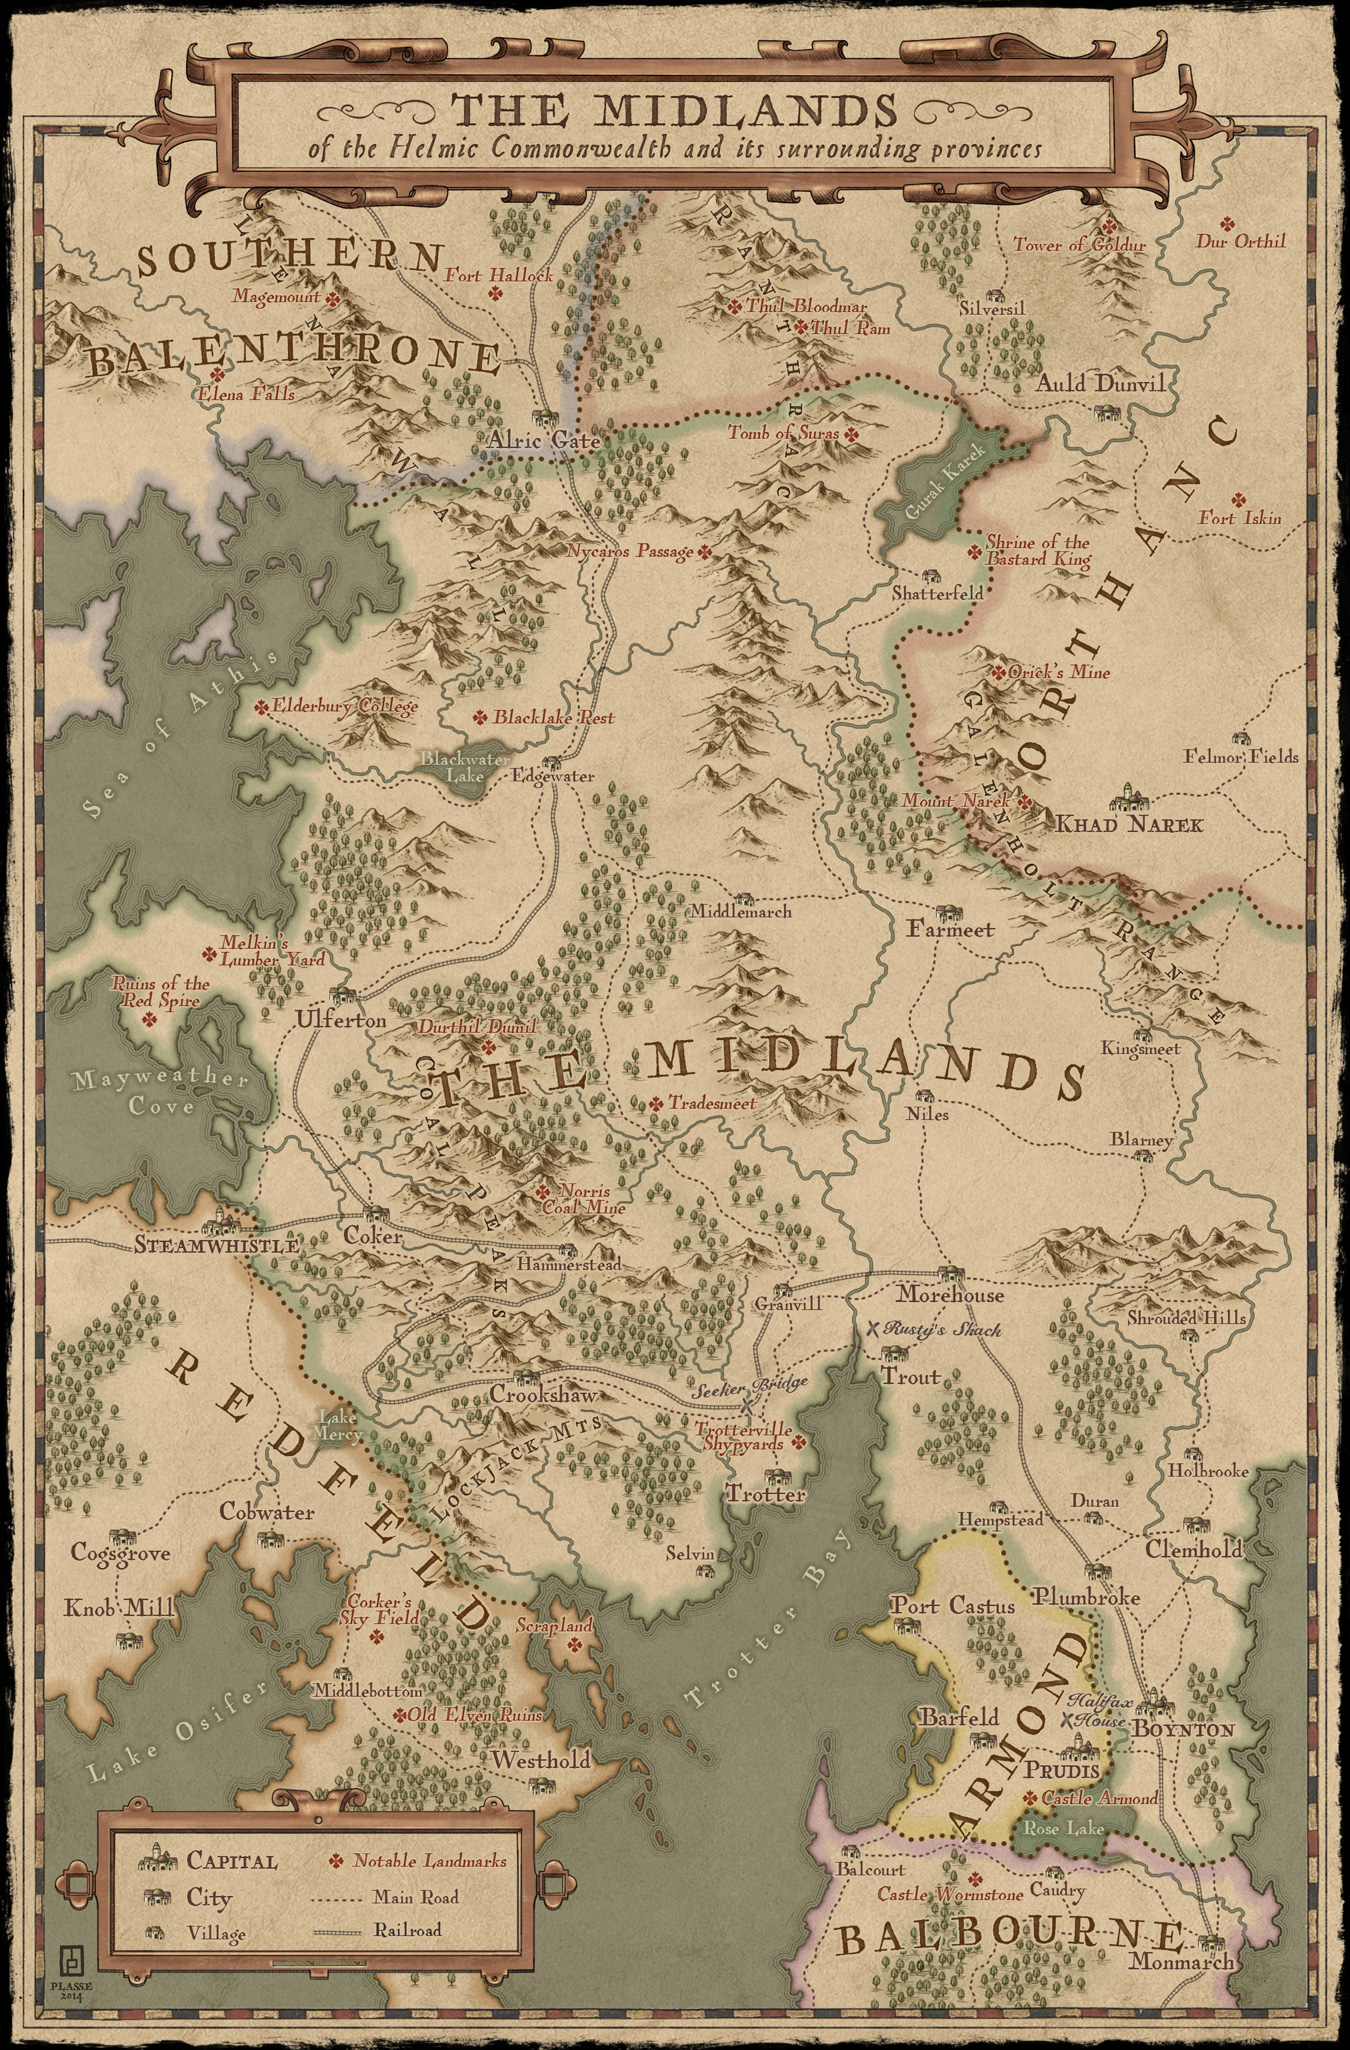 helm-map-of-the-midlands-of-the-commonwealth-paint-border.jpg